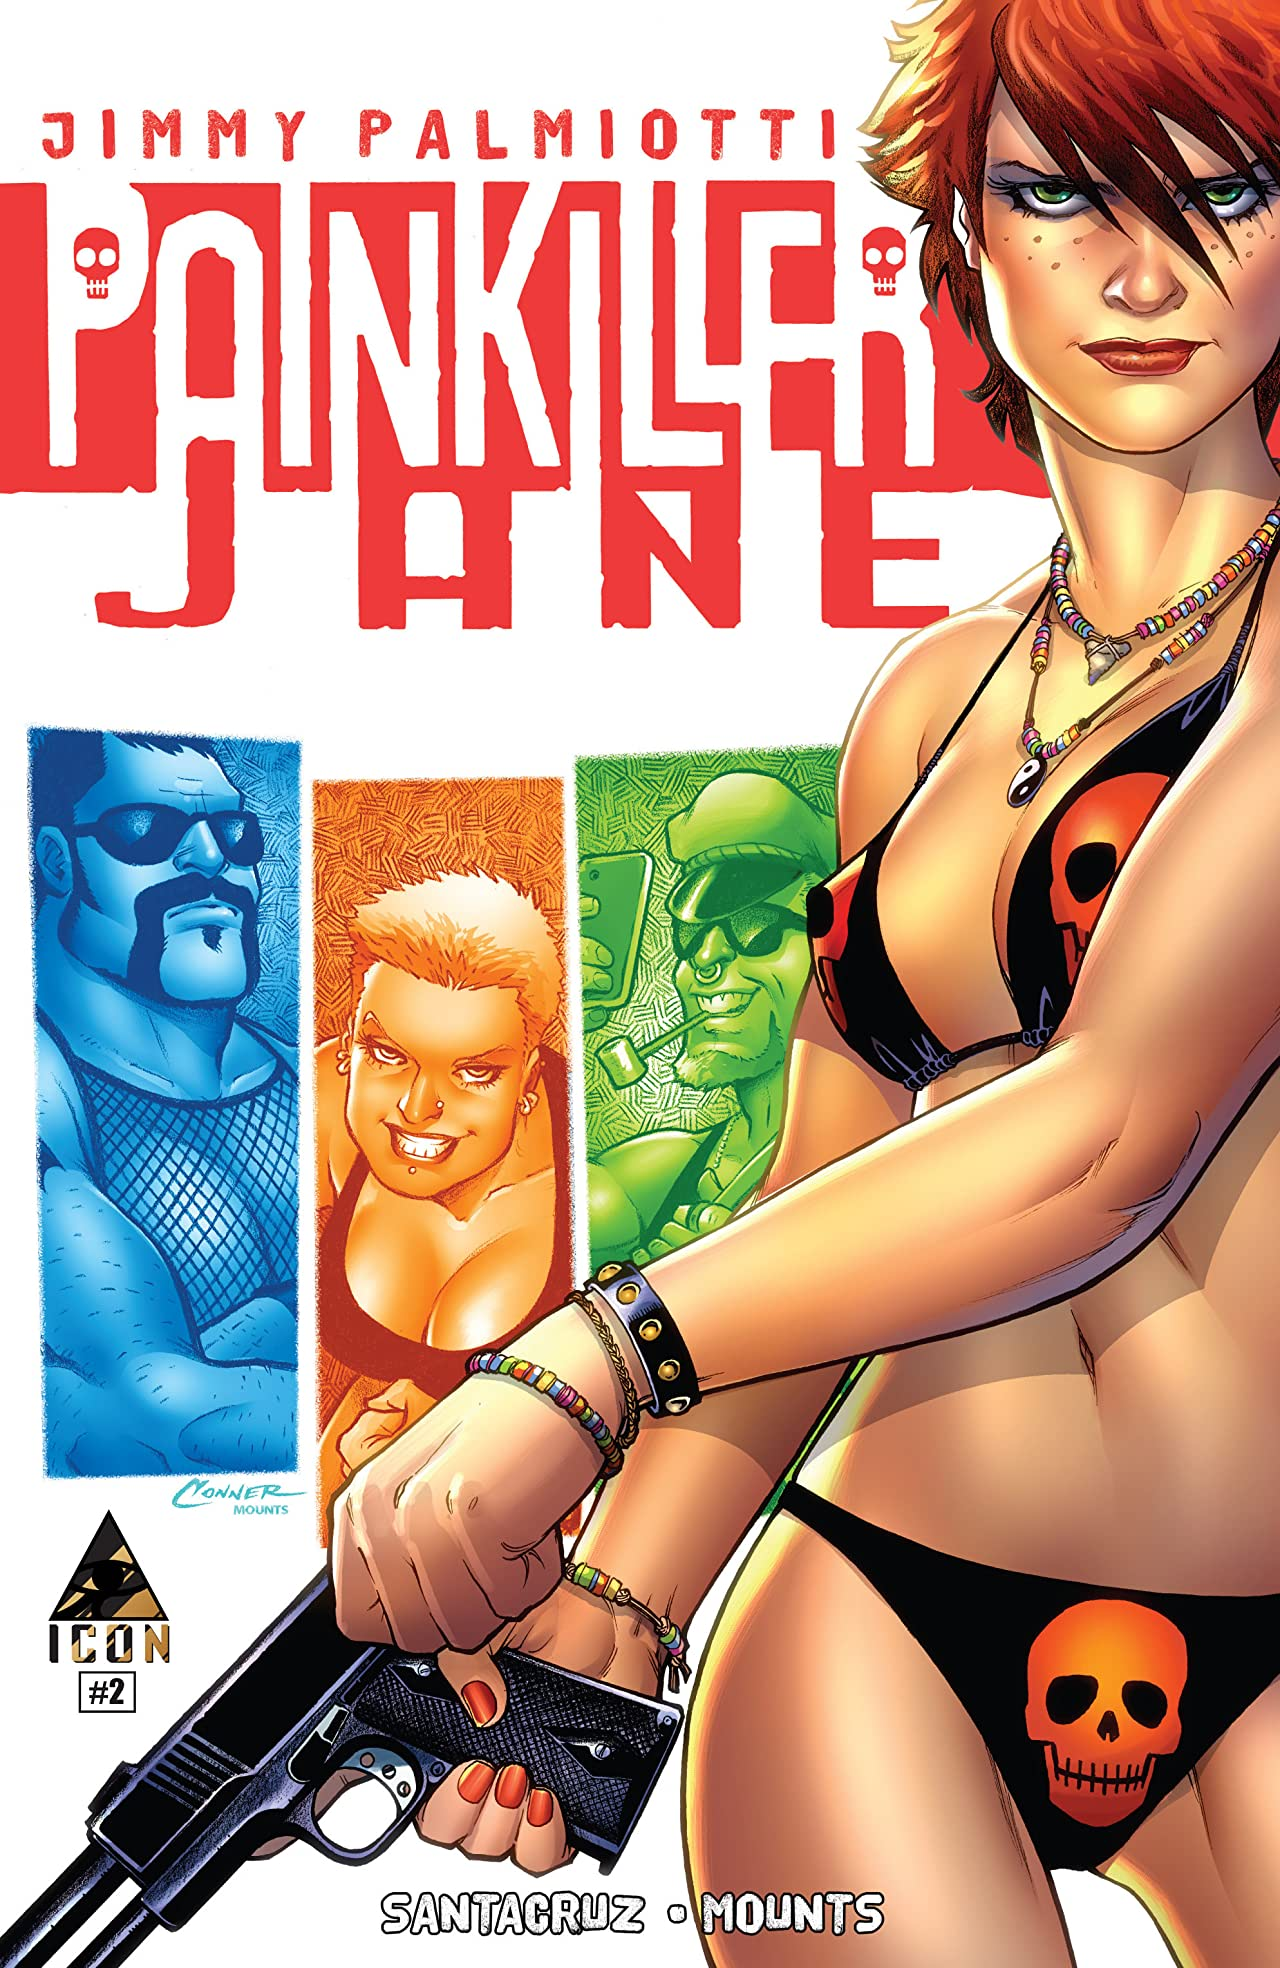 Painkiller Jane: The Price of Freedom #2 (of 4)